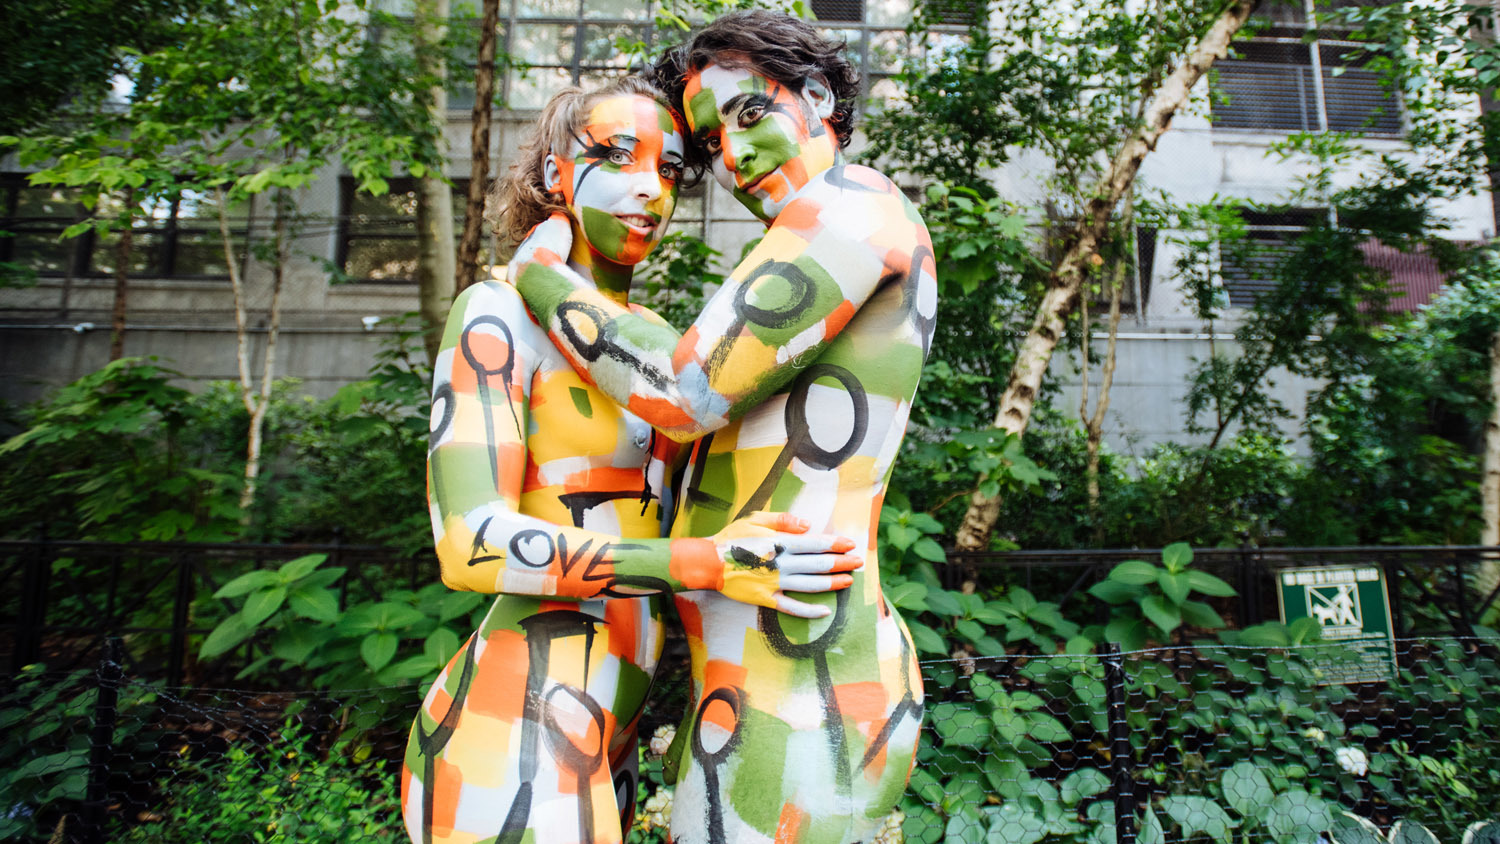 Tivoli Ny Street Painting Festival See Stunning Photos From Nyc Bodypainting Day